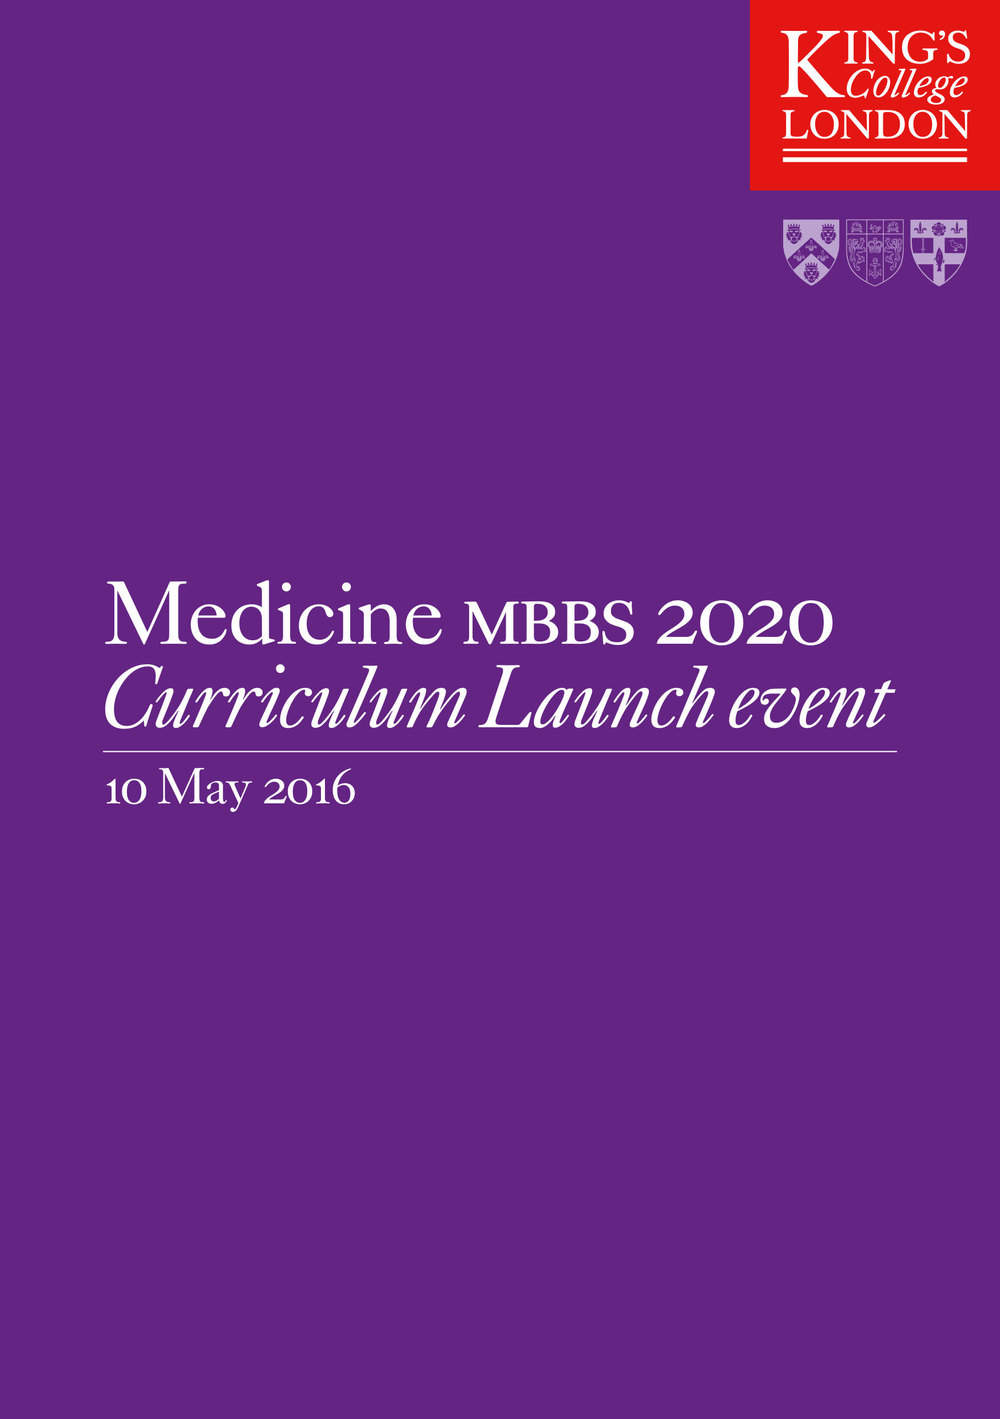 MBBS2020LaunchProg_May2016_proof3_AW-1.jpg